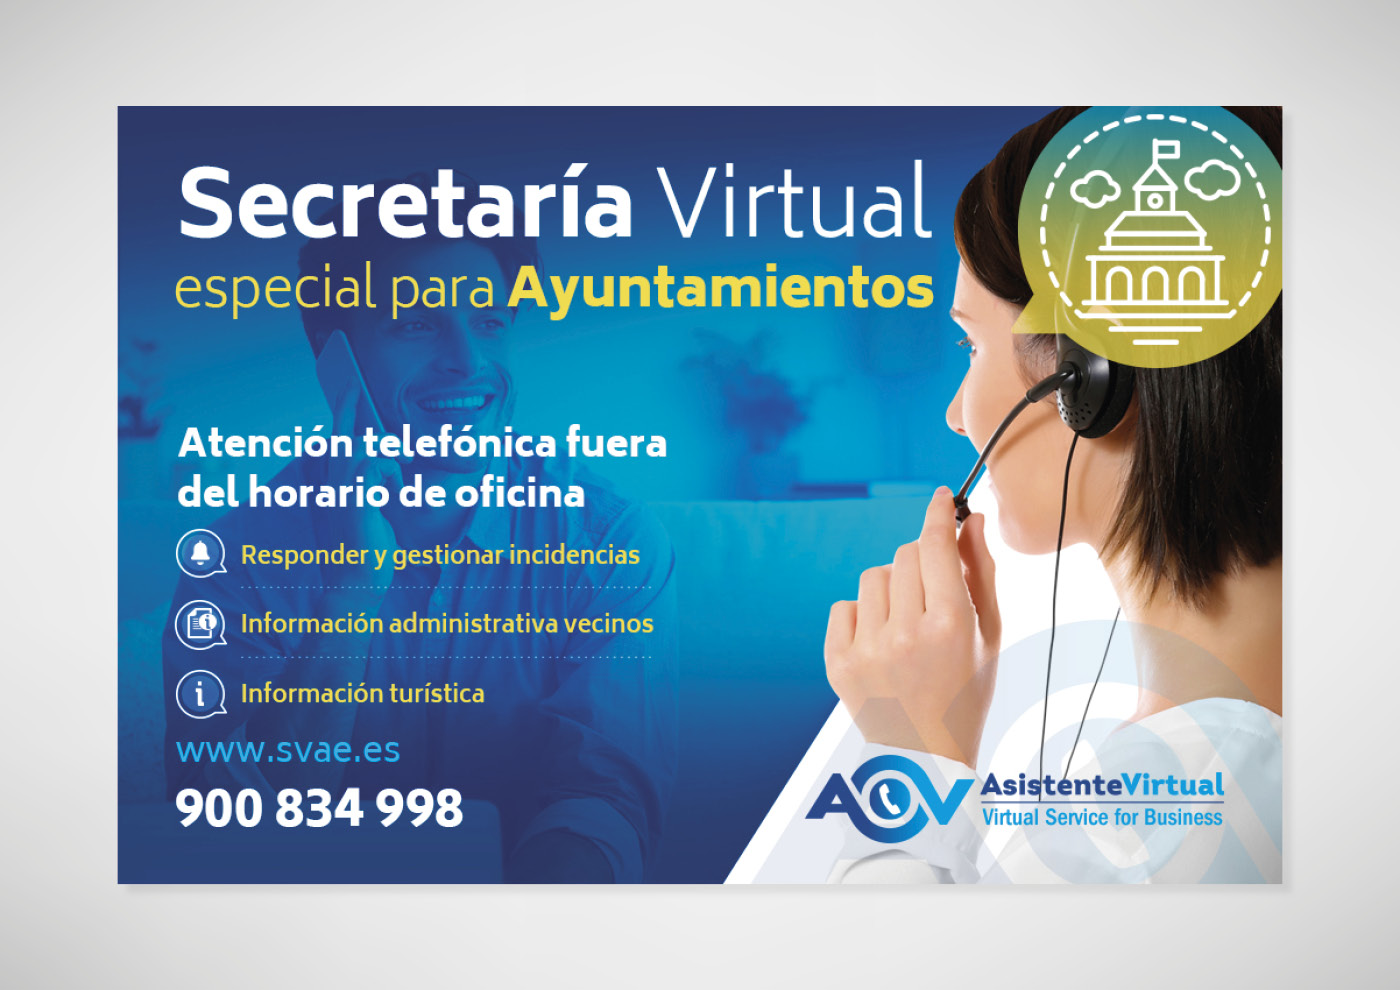 Asistente Virtual - Anuncio secretaría virtual - Ivan Diez